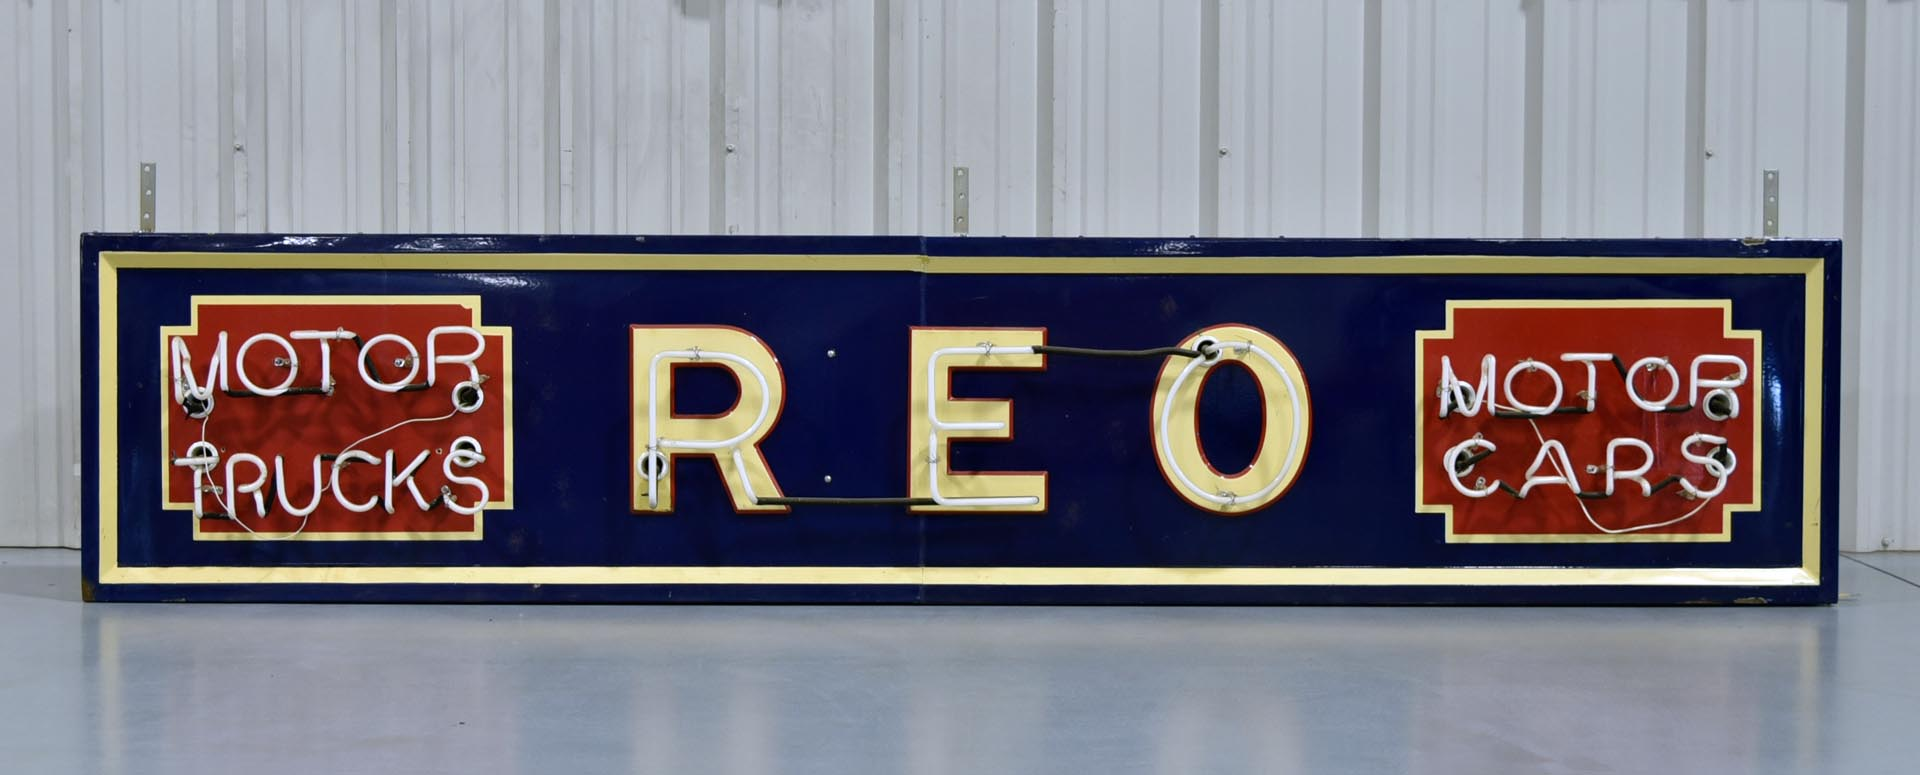 REO Automobile Motor Cars & Trucks Porcelain Neon Can Sign